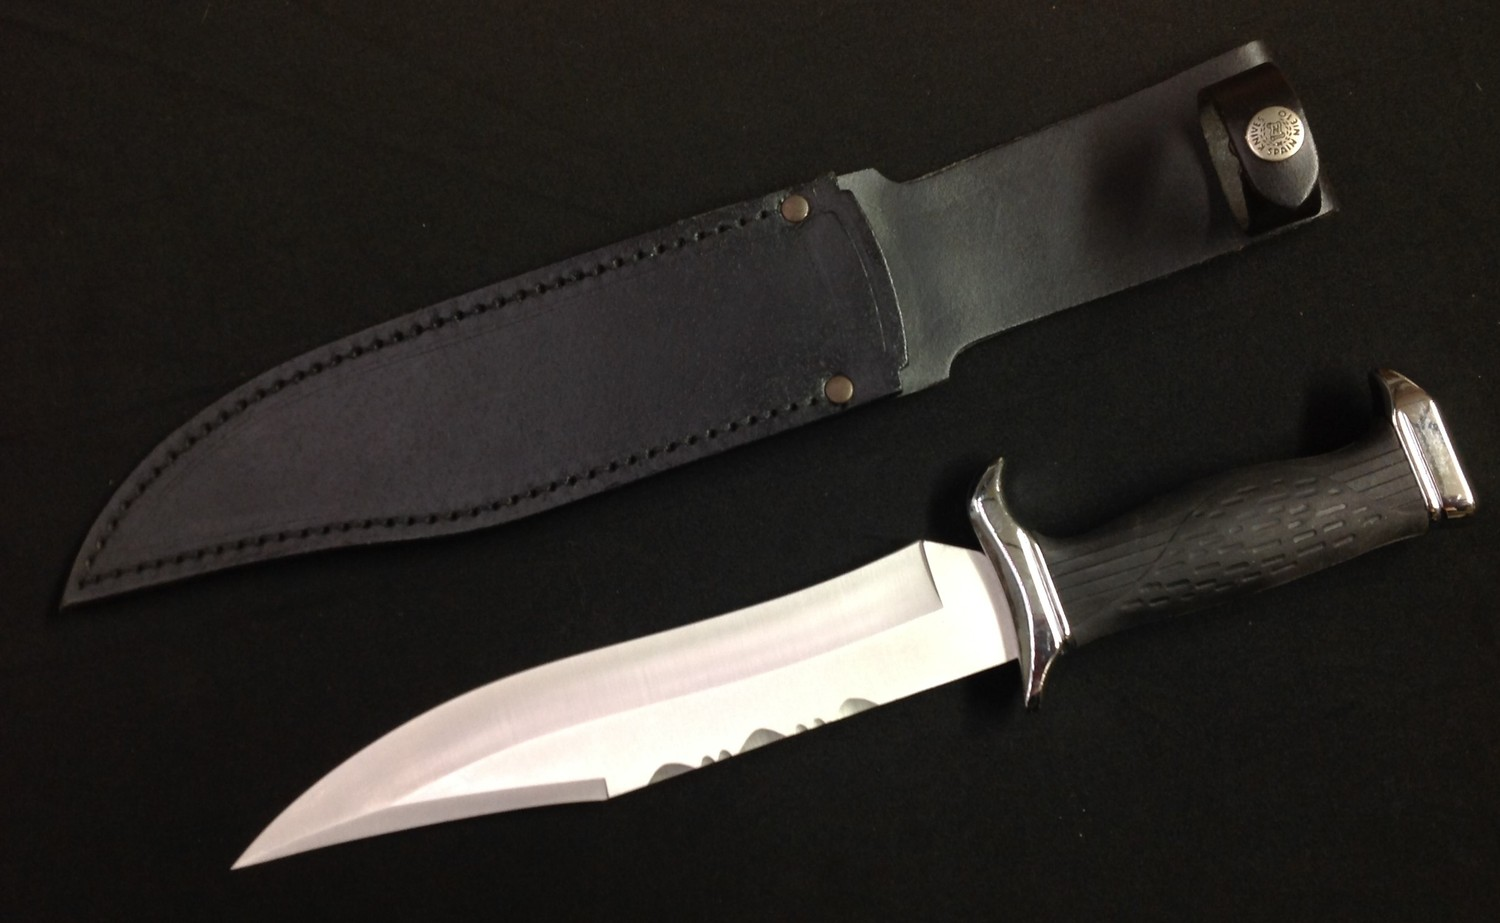 """Bowie Knife with 225mm long blade maker marked """"Nieto 440c Stainless Handcrafted, Spain"""". Width of - Image 3 of 11"""